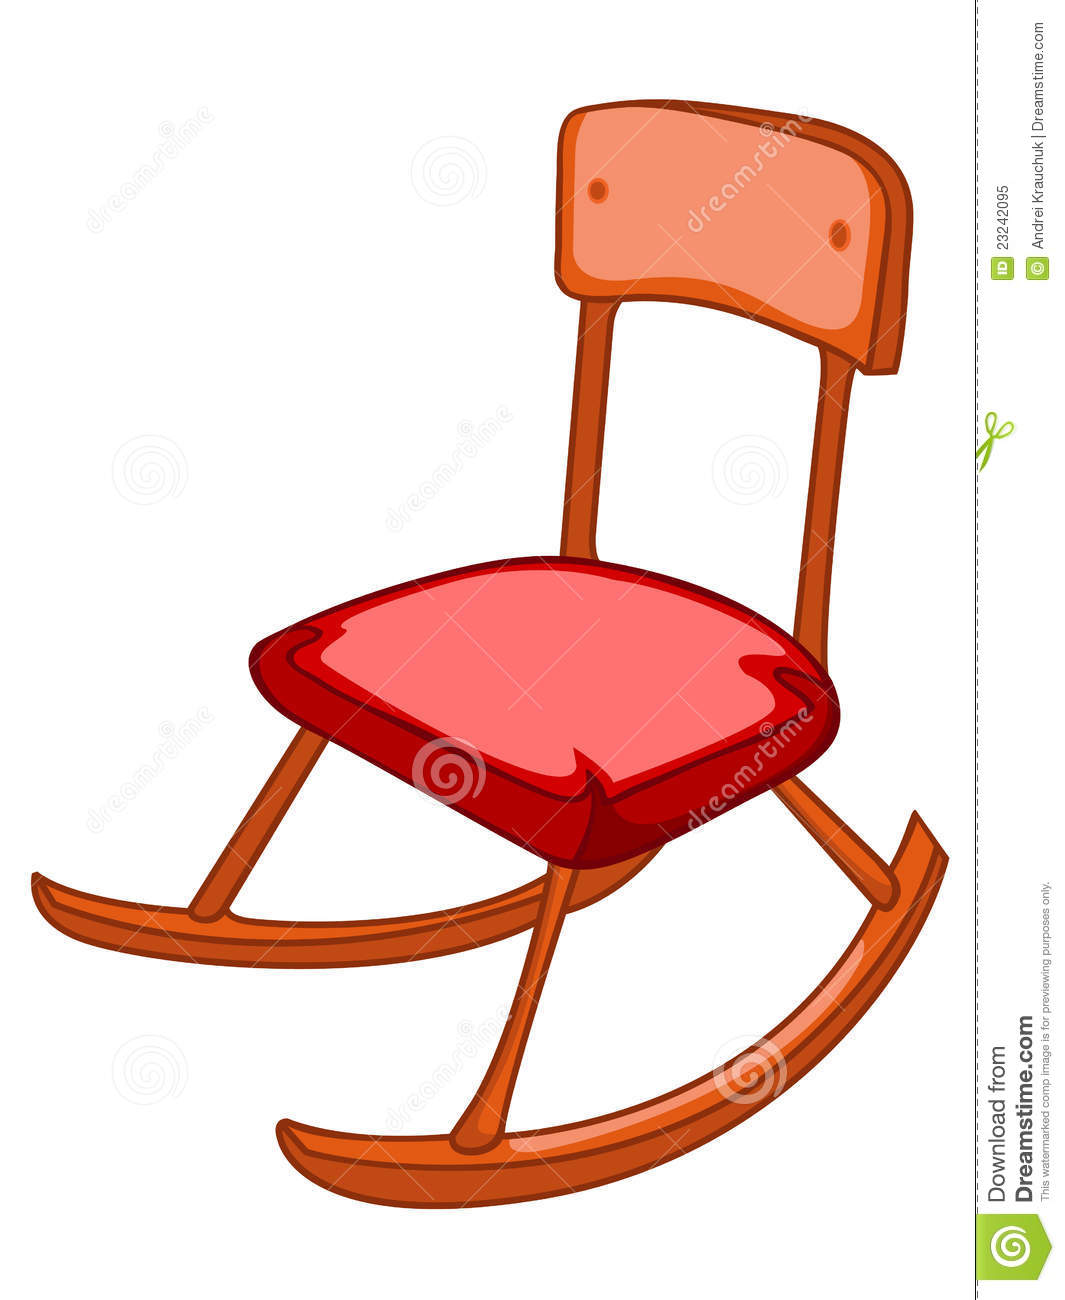 Red Rocking Chair Clipart ~ Cartoon home furniture chair royalty free stock photo